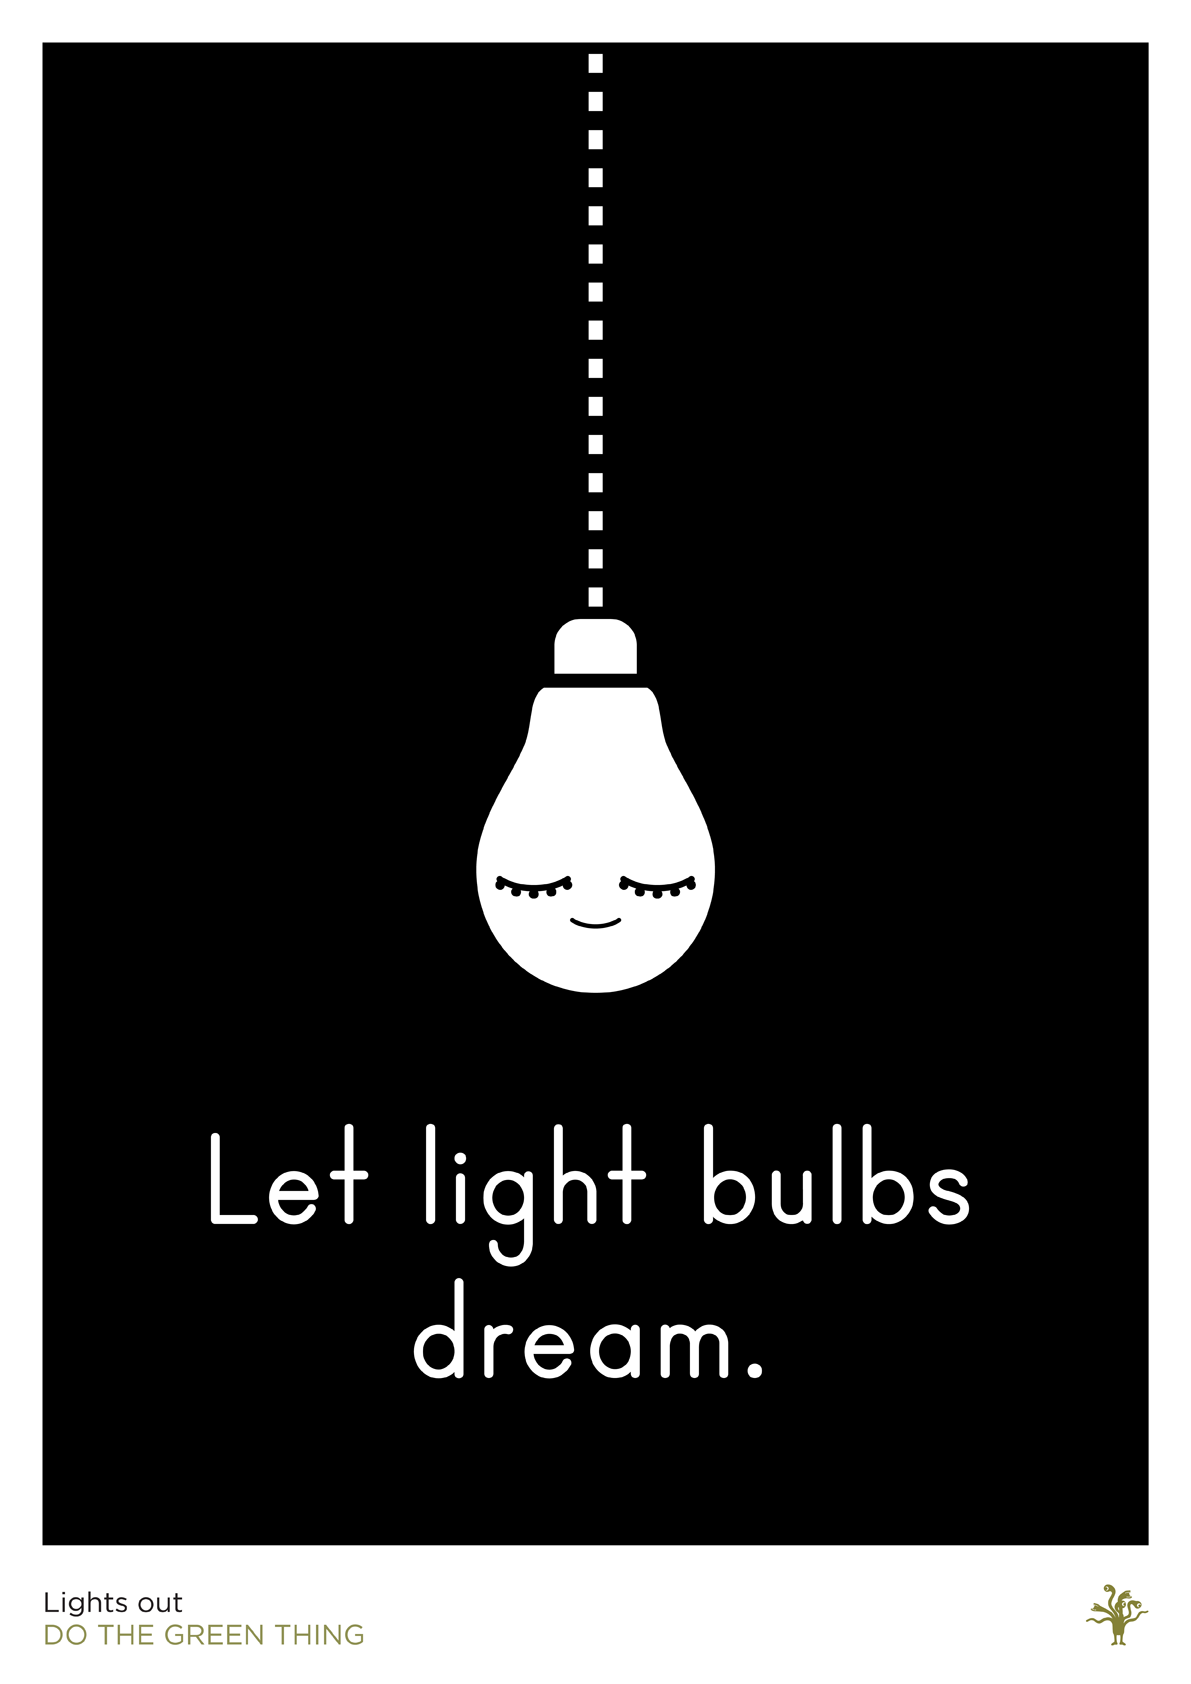 Do the green thing! Switch off the light as you leave the room ...